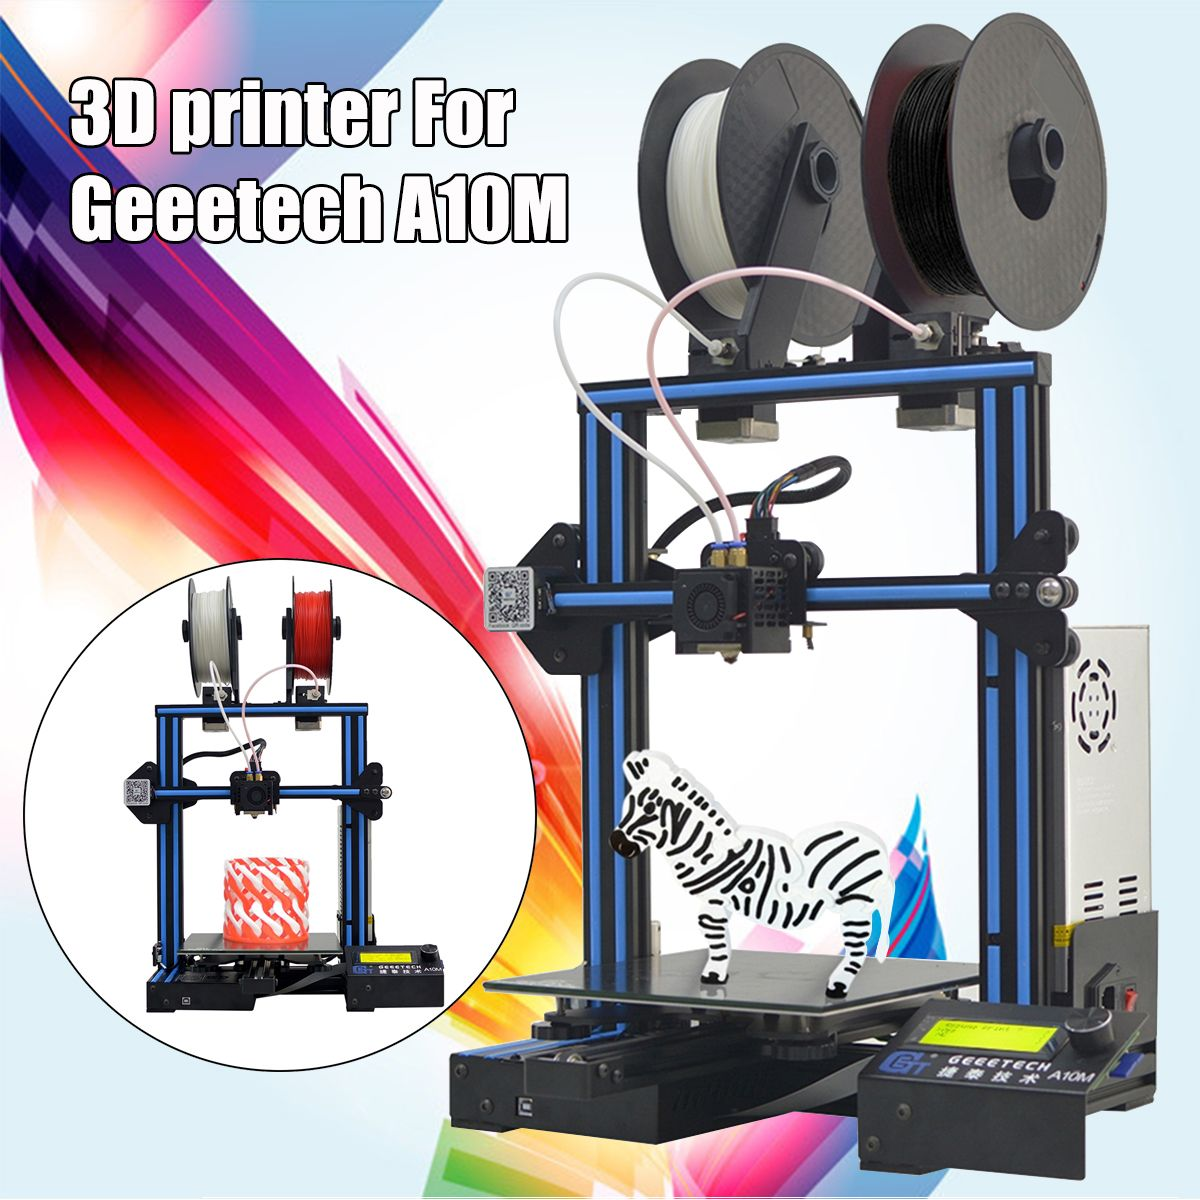 A10M Mix-color I3 3D Printer Printing Size With Dual Extruder/Filament Detector/Power Resume/3:1 Gear Train Control Board